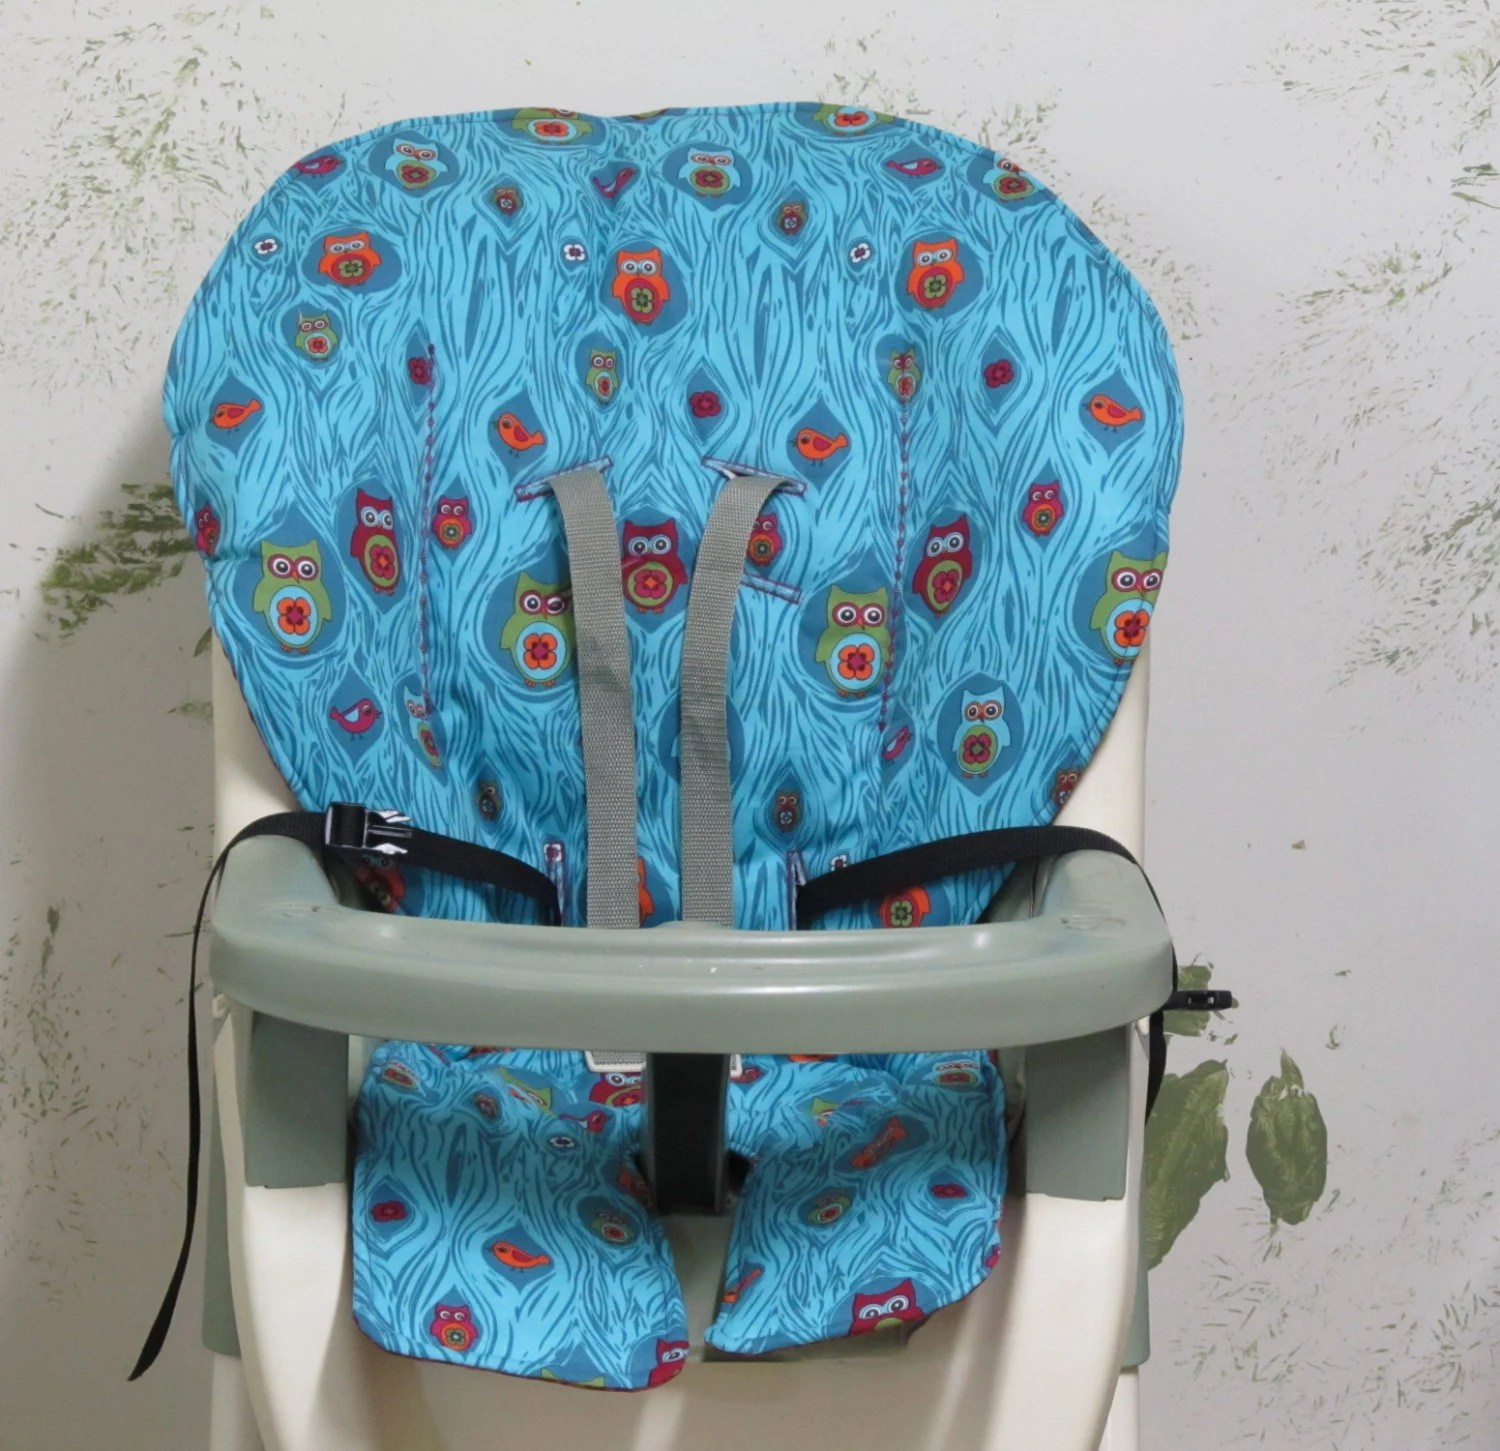 stokke high chair cushion sewing pattern chicco travel seat hook on graco cover pad replacement woodland owls